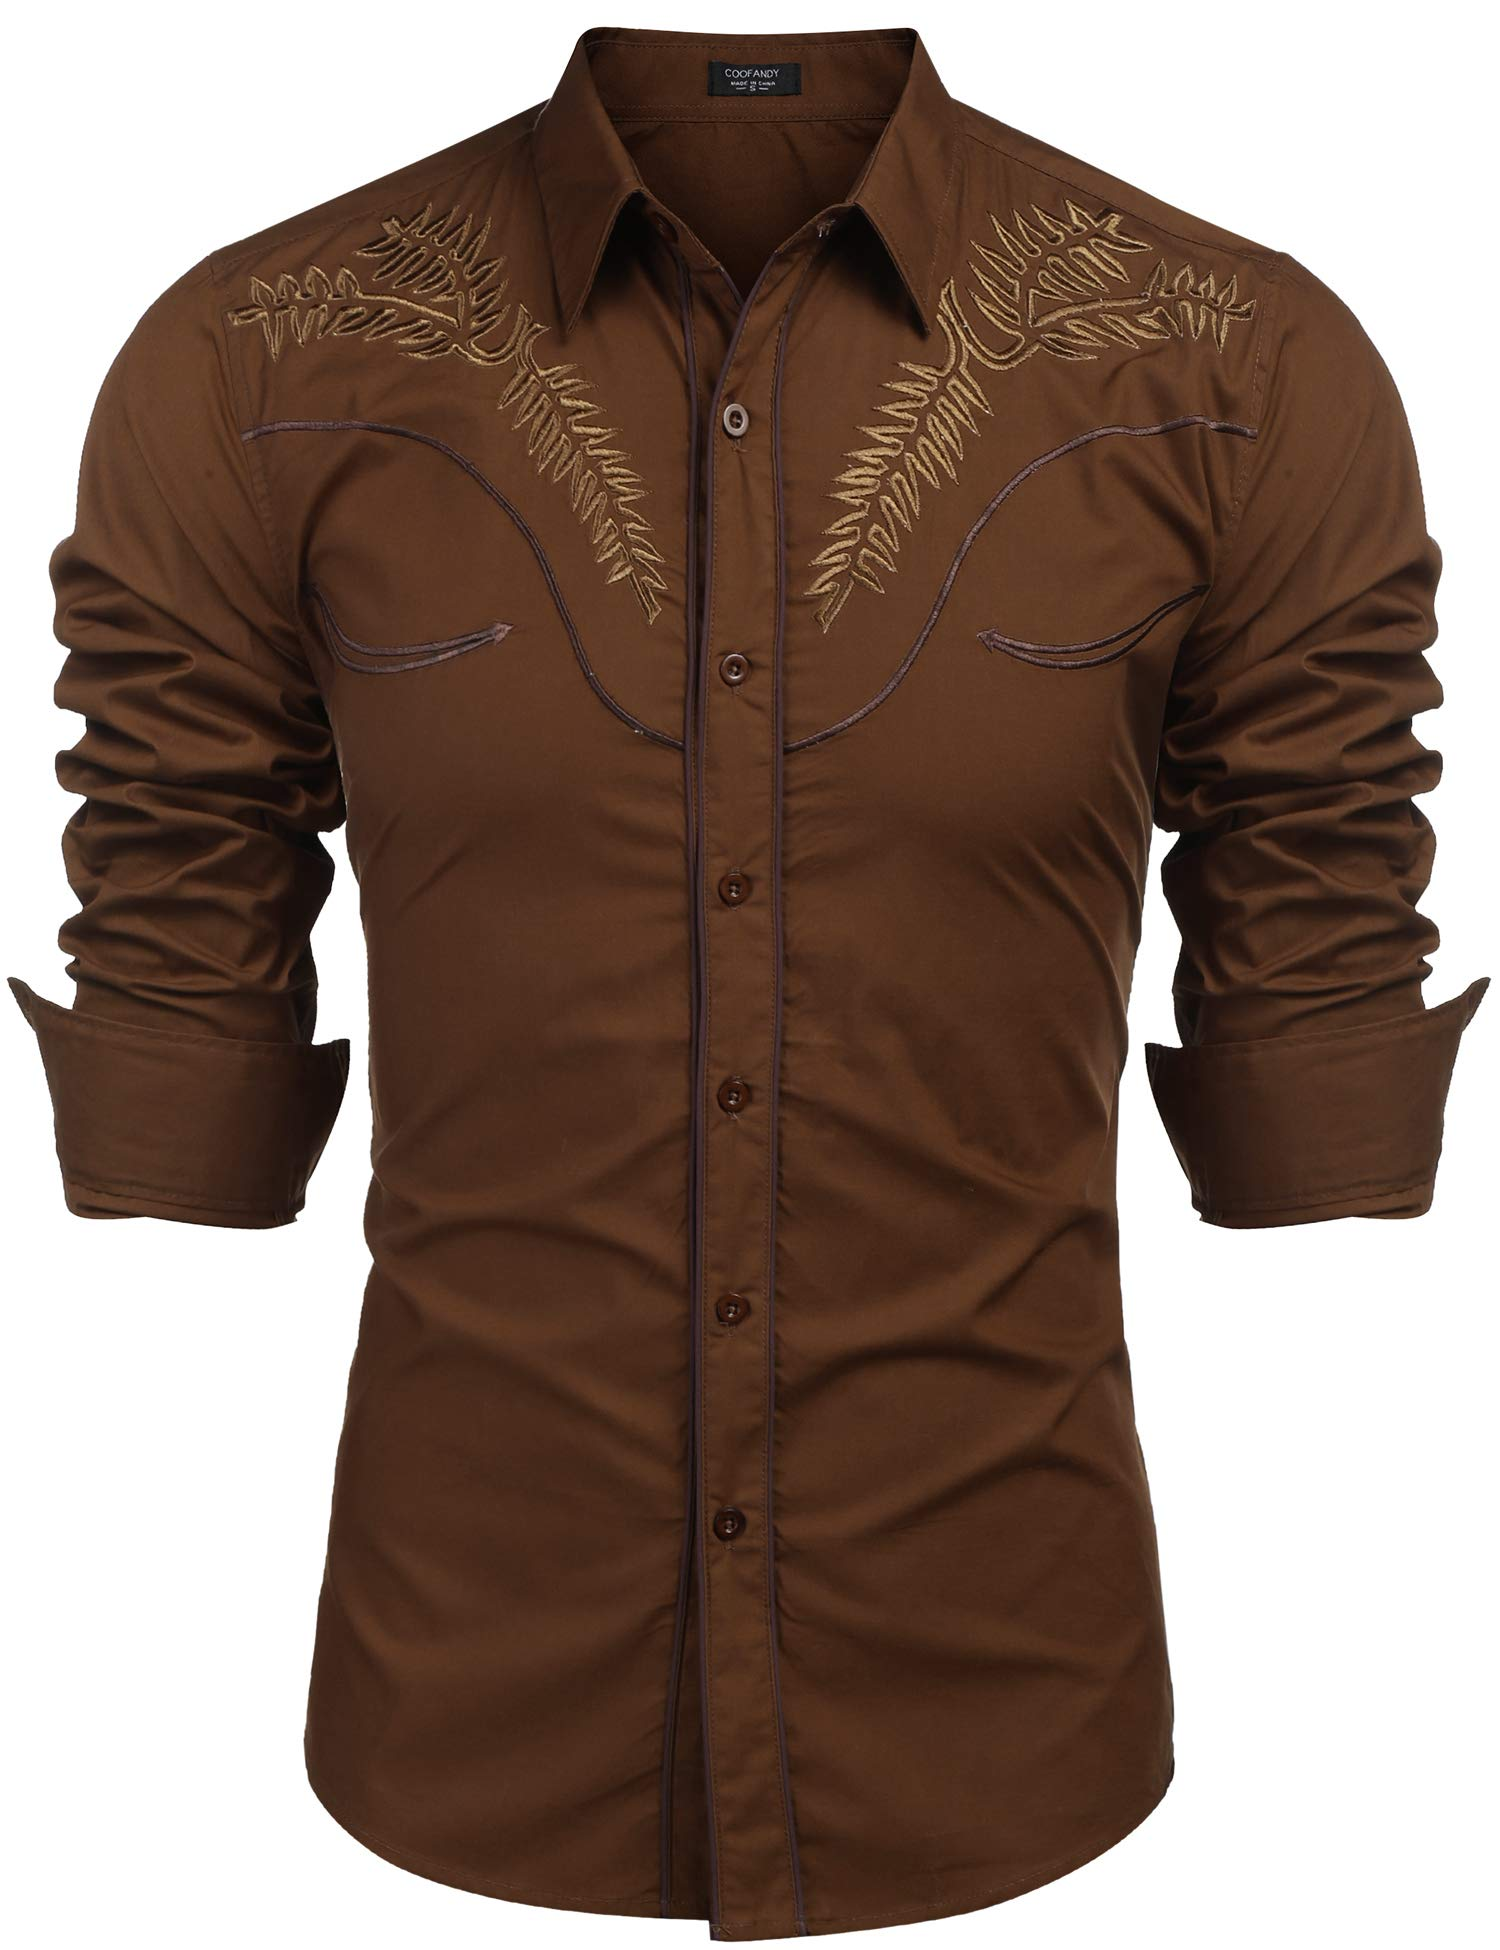 COOFANDY Western Shirts Sleeve Embroideres